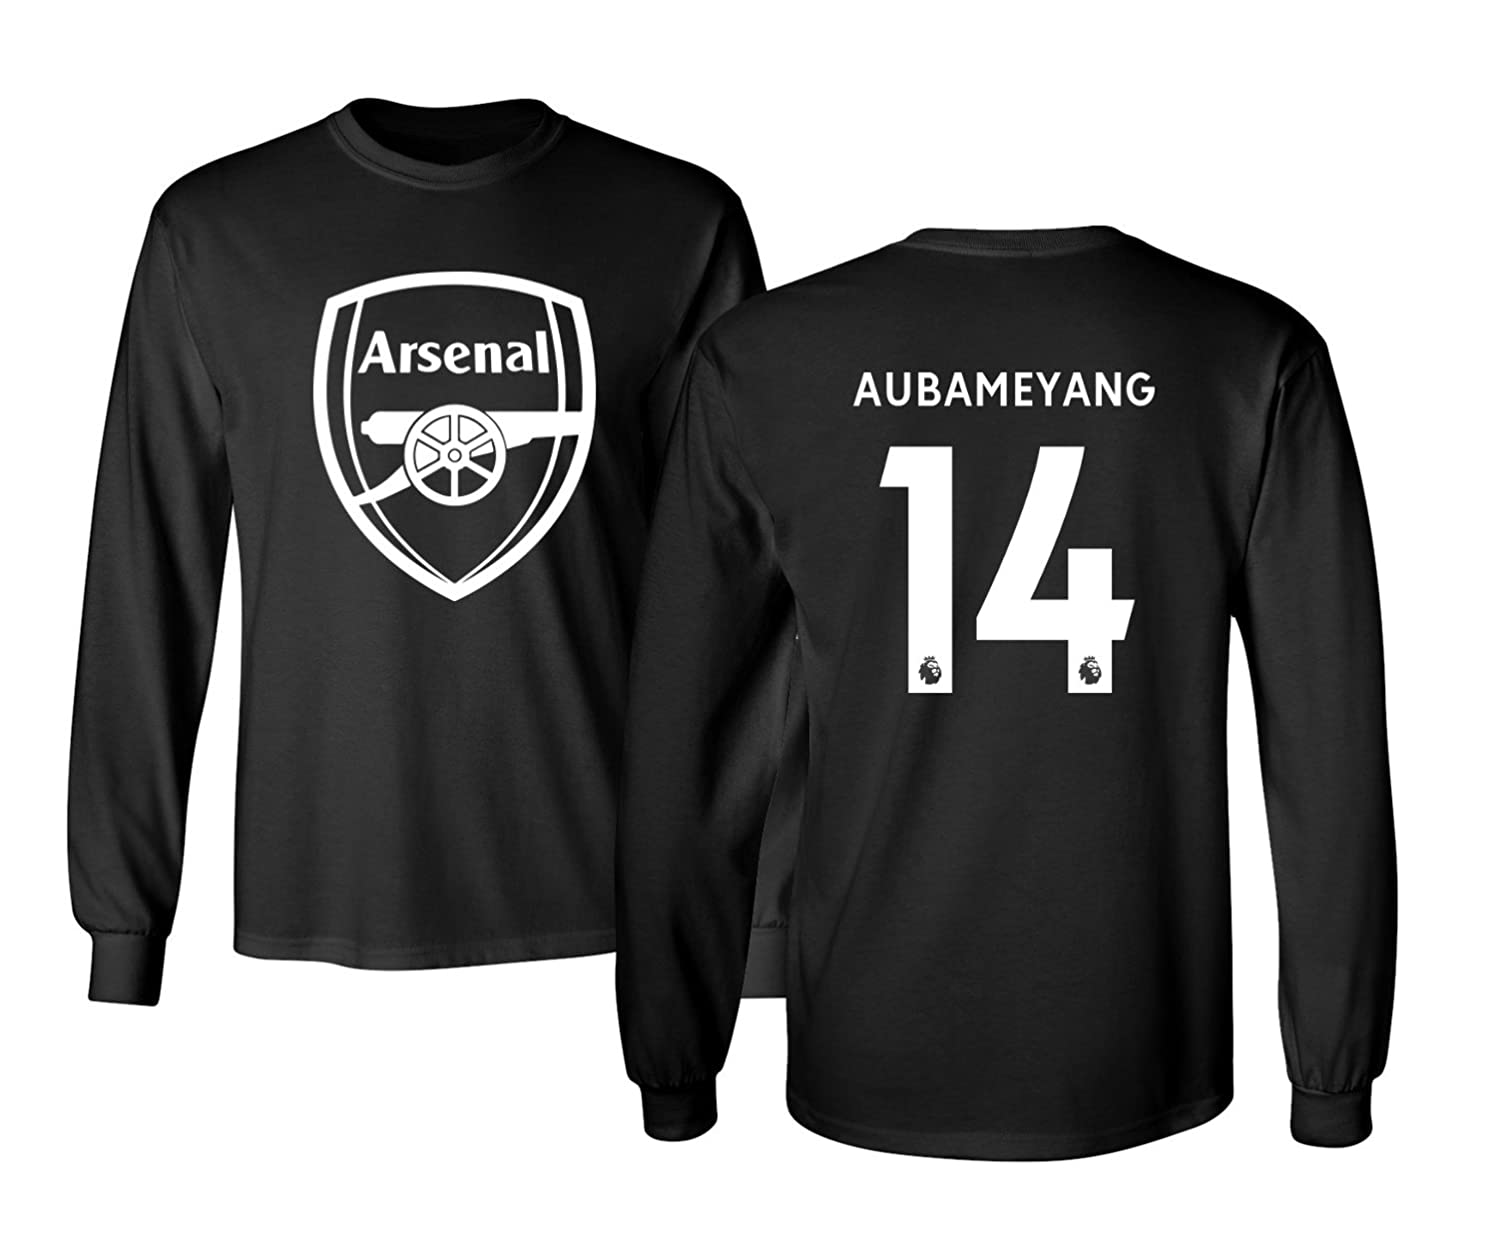 aa5313043a0 Buy Arsenal T Shirt Online India – EDGE Engineering and Consulting ...